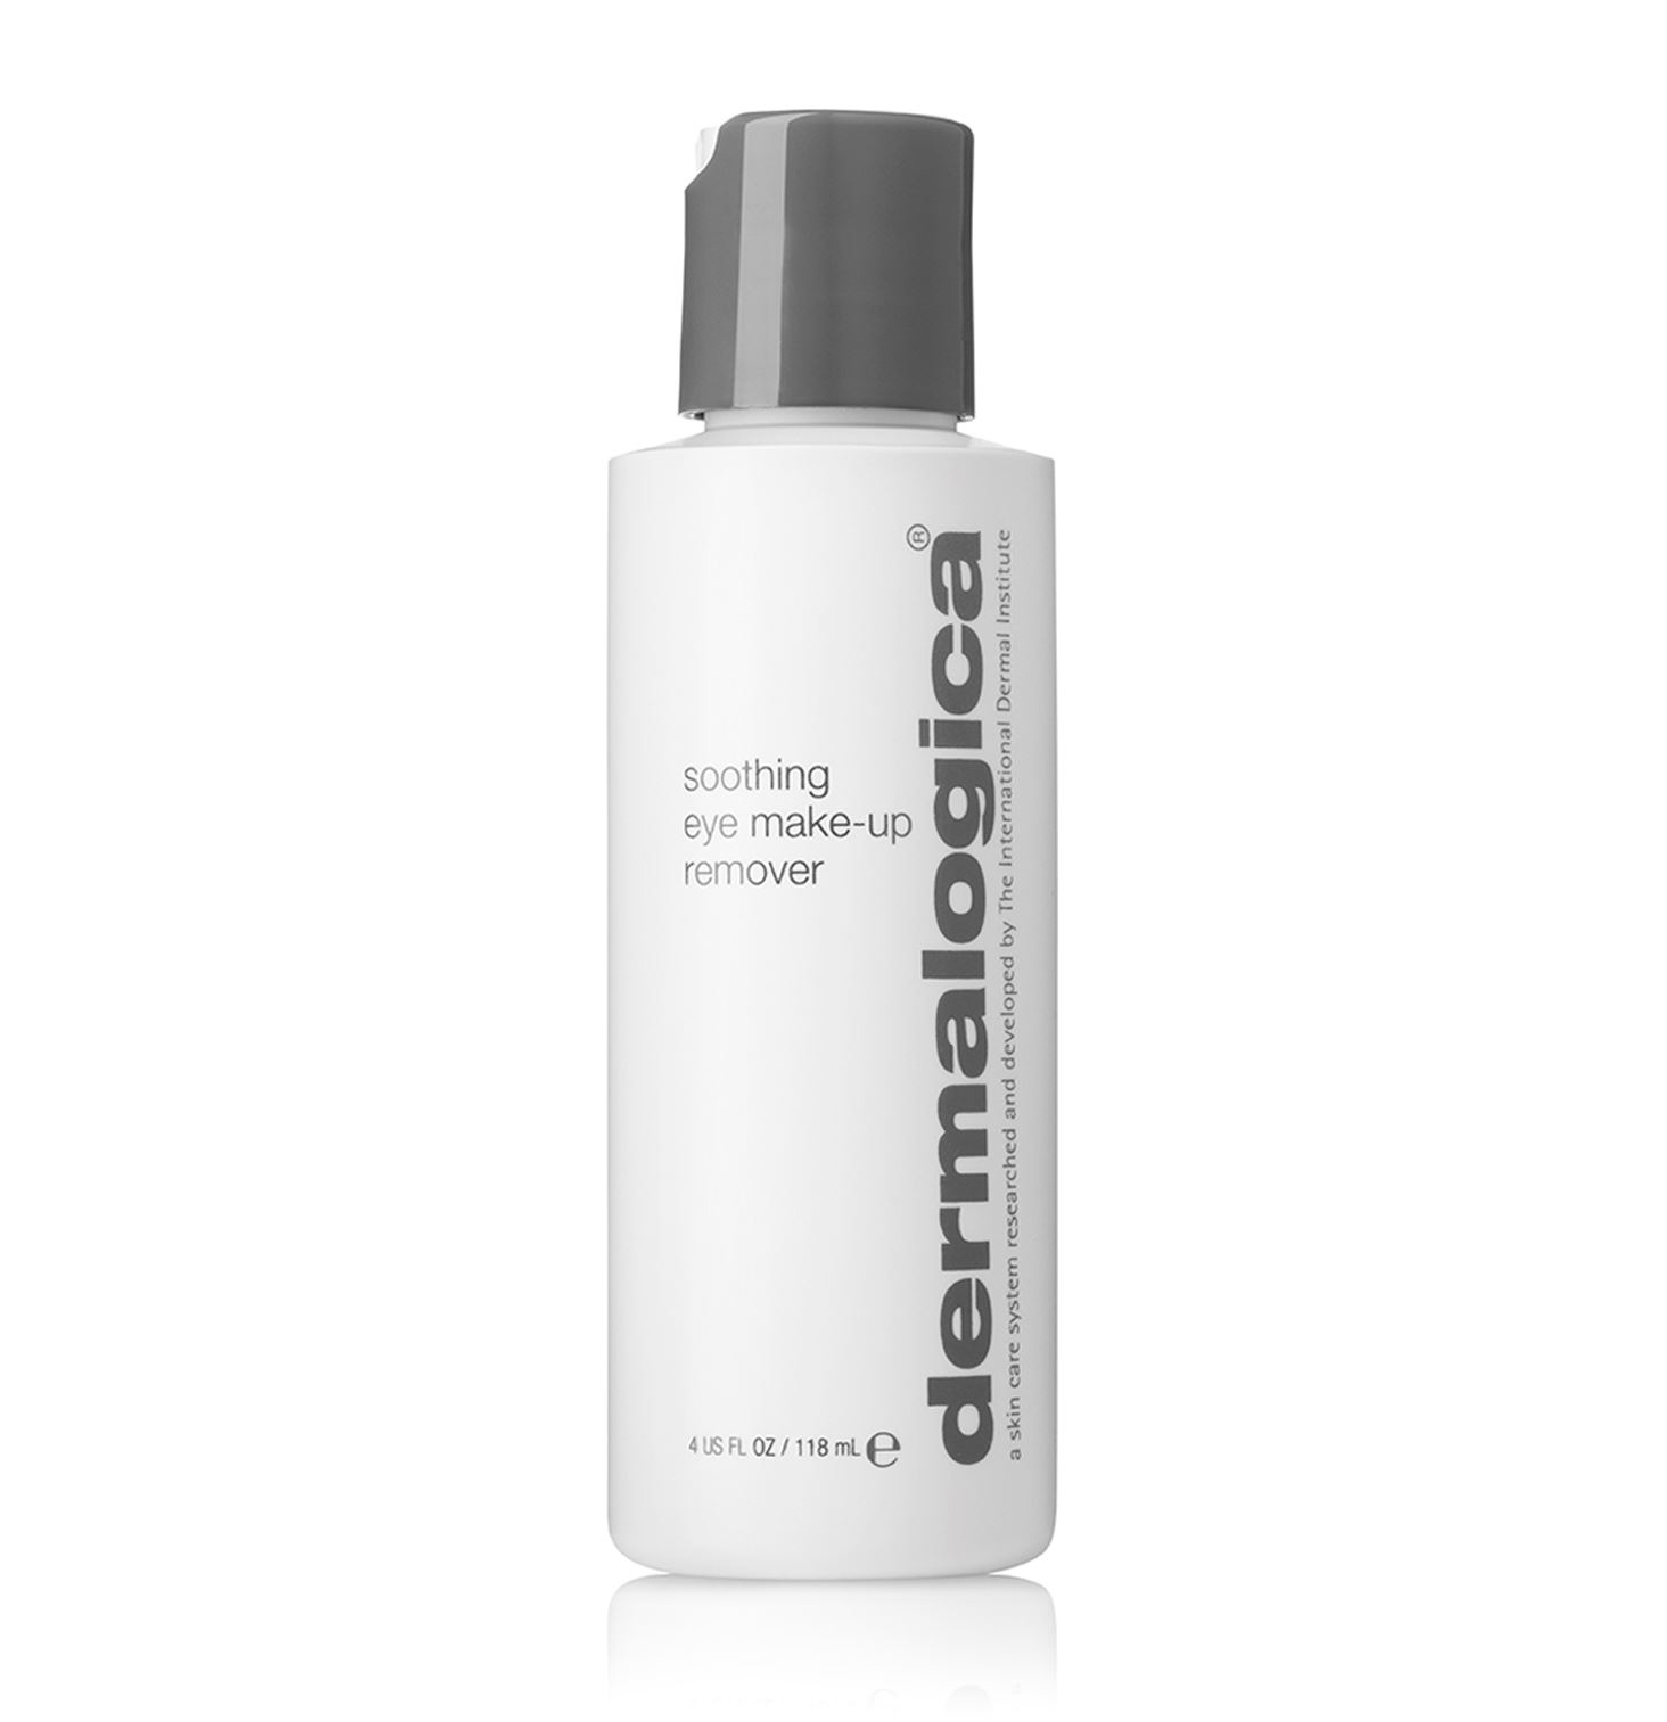 Dermalogica - Soothing Eye Make-Up Remover